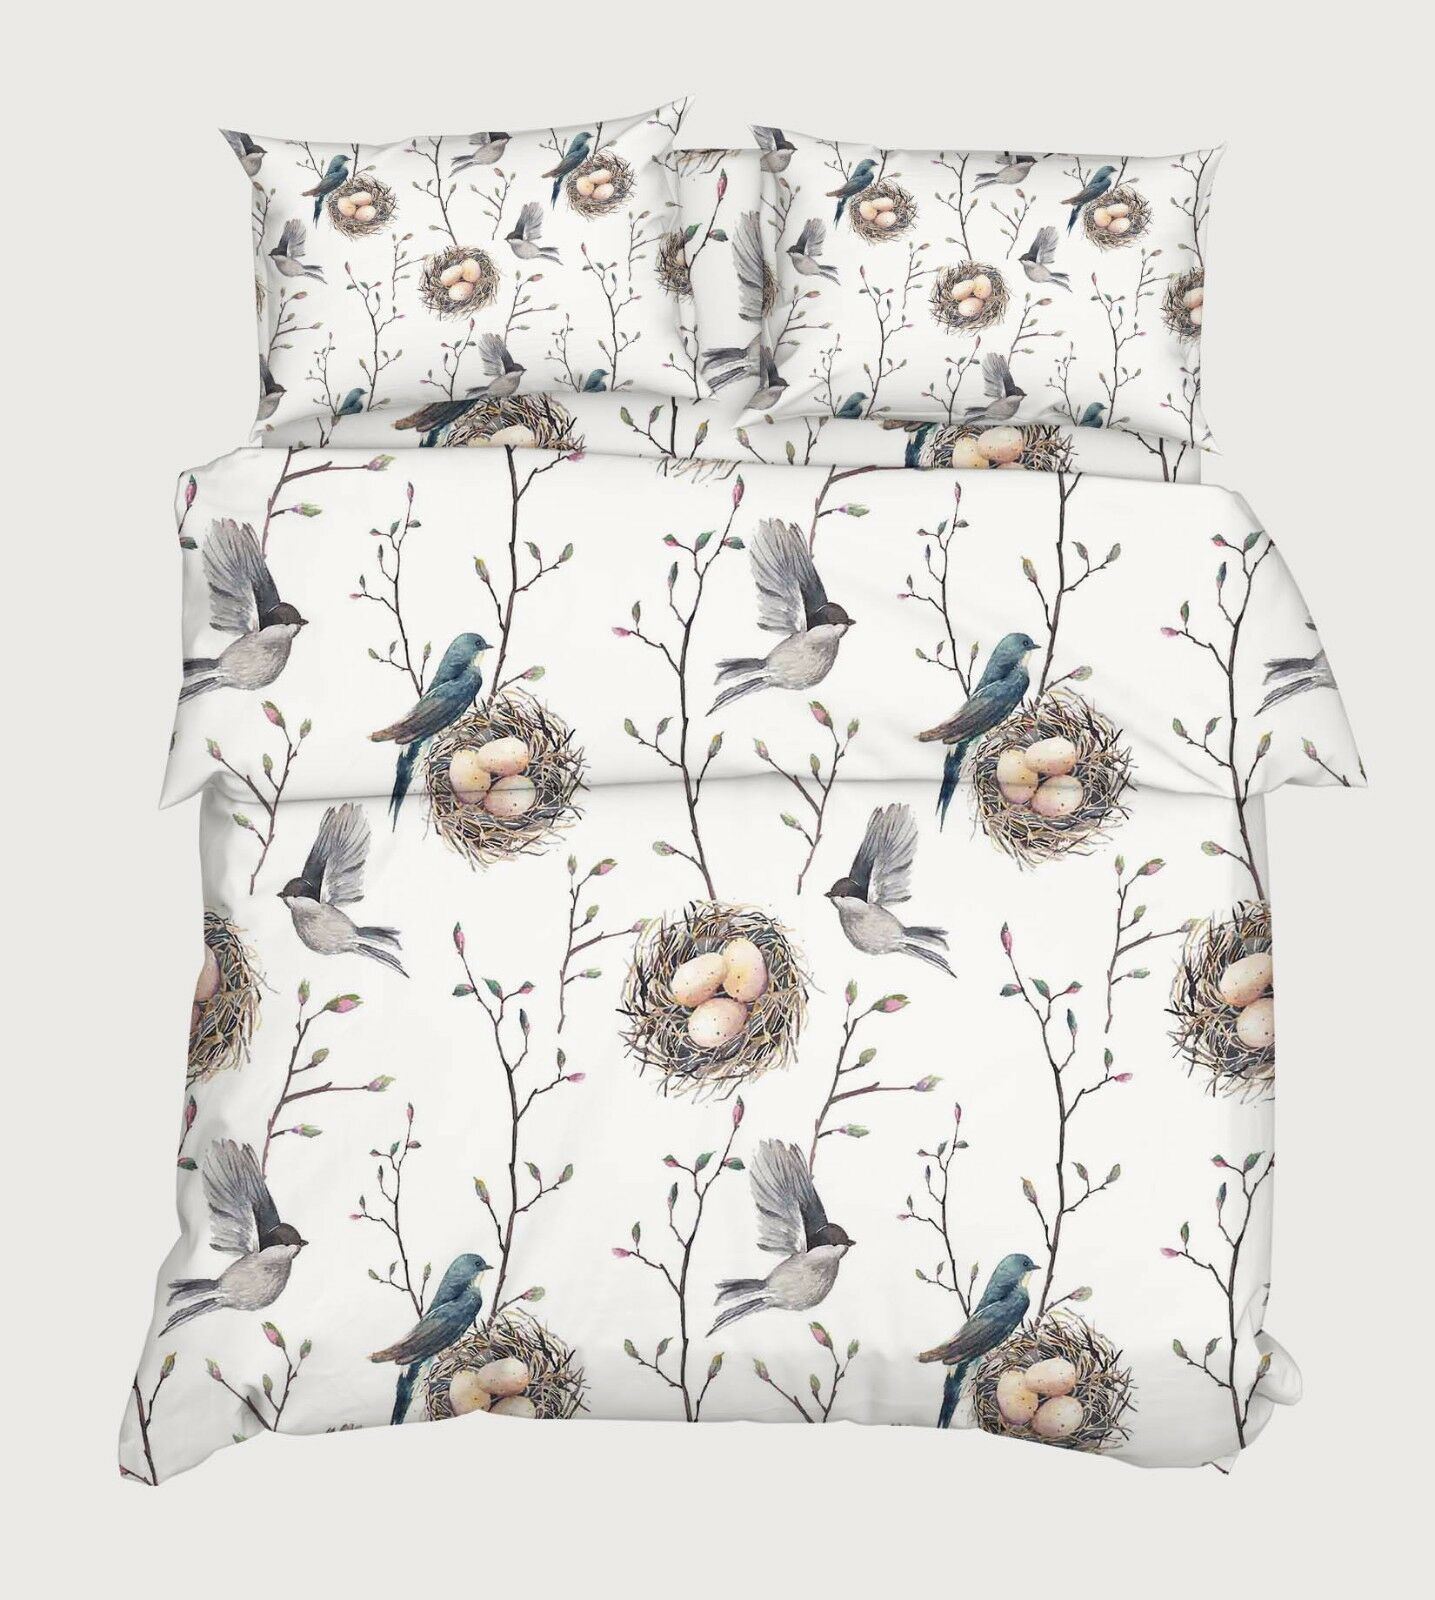 3d Bird Nest 847 Bed Cushion Covers Stitch Duvet Cover Set Single de Kyra